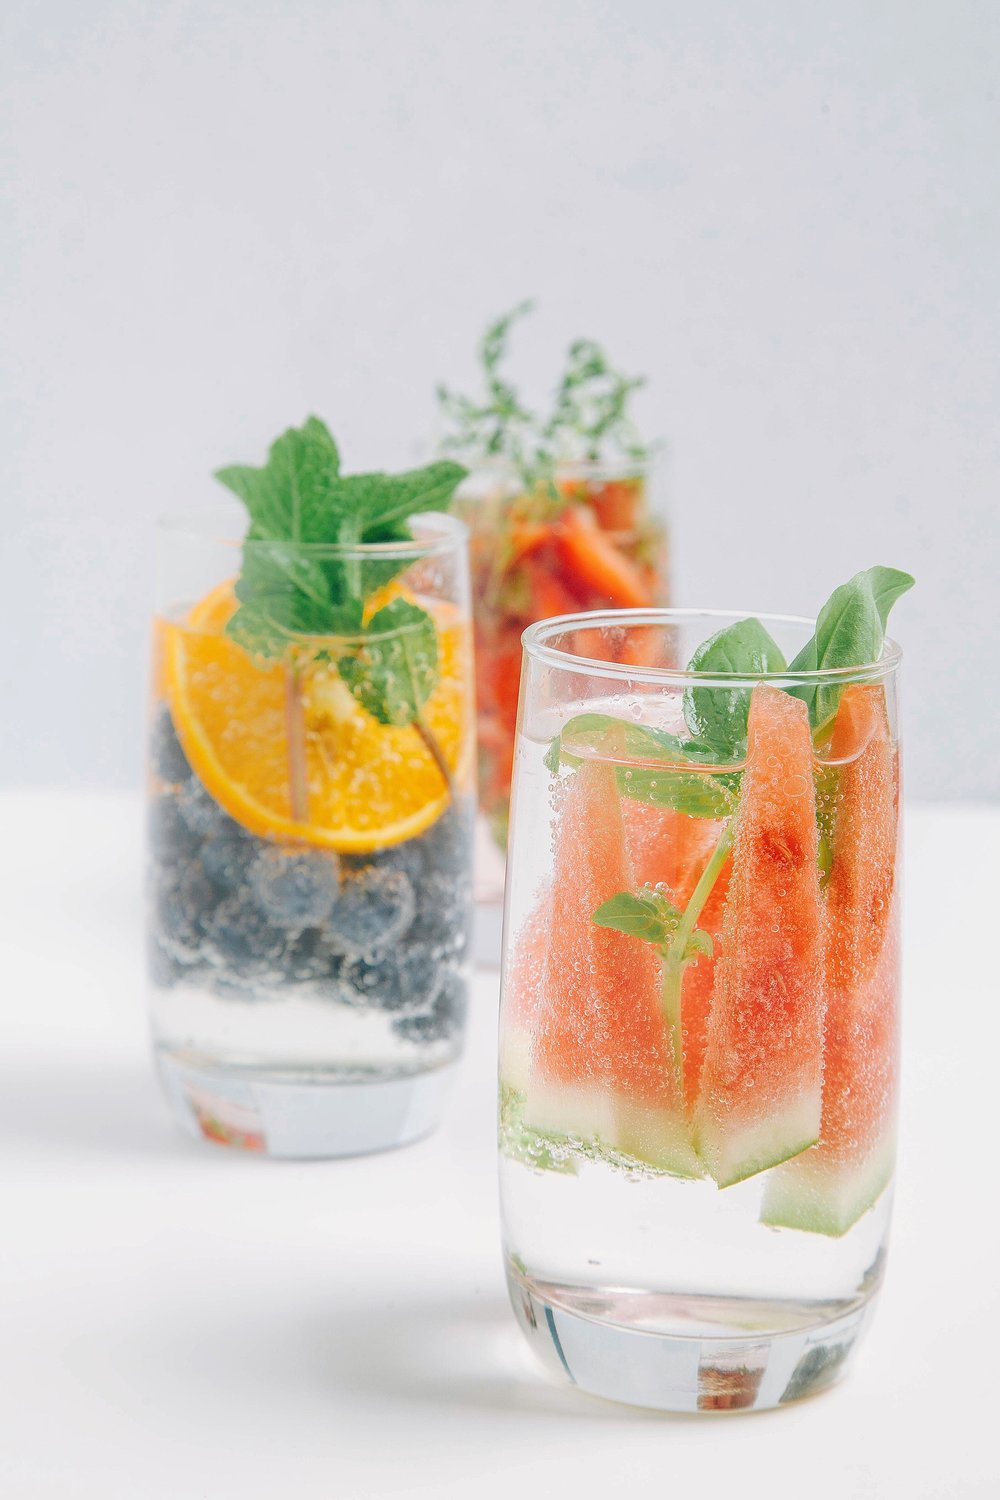 You won't go hungry, as infused water is not meant to displace the food you would normally eat, but rather supplement it. -